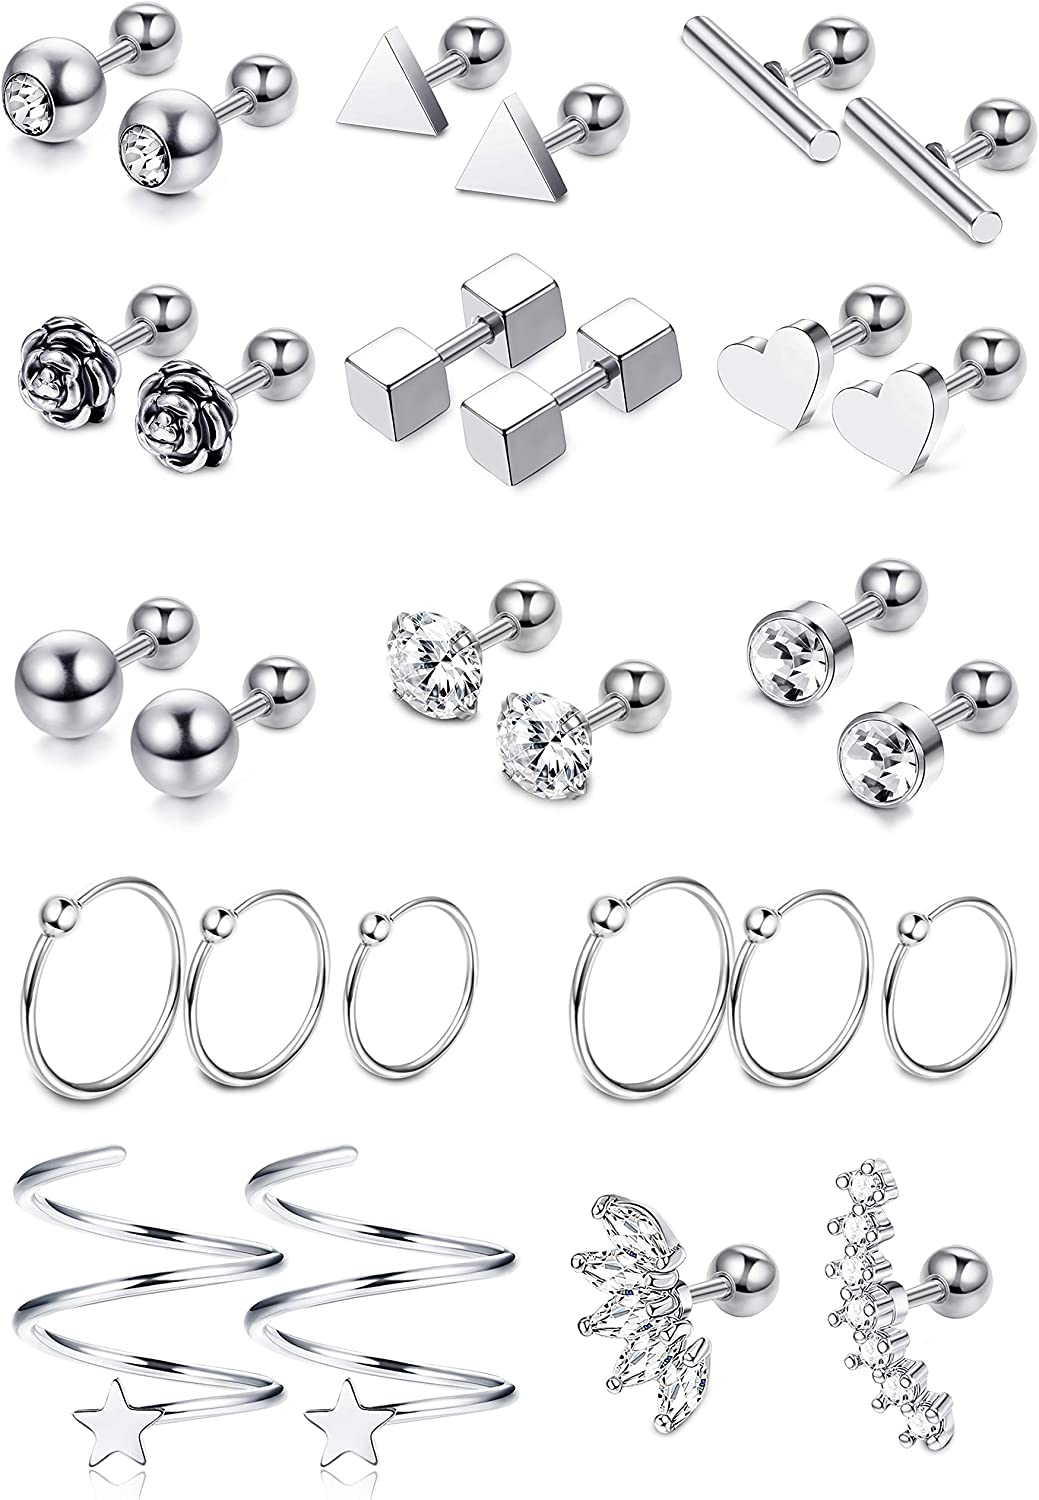 LOYALLOOK 15 Pairs 18G Stainless Steel Flower Heart Star Cartilage Earring CZ Inlaid Barbell Helix Stud Earrings Hoop Tragus Earring Piercing Jewelry